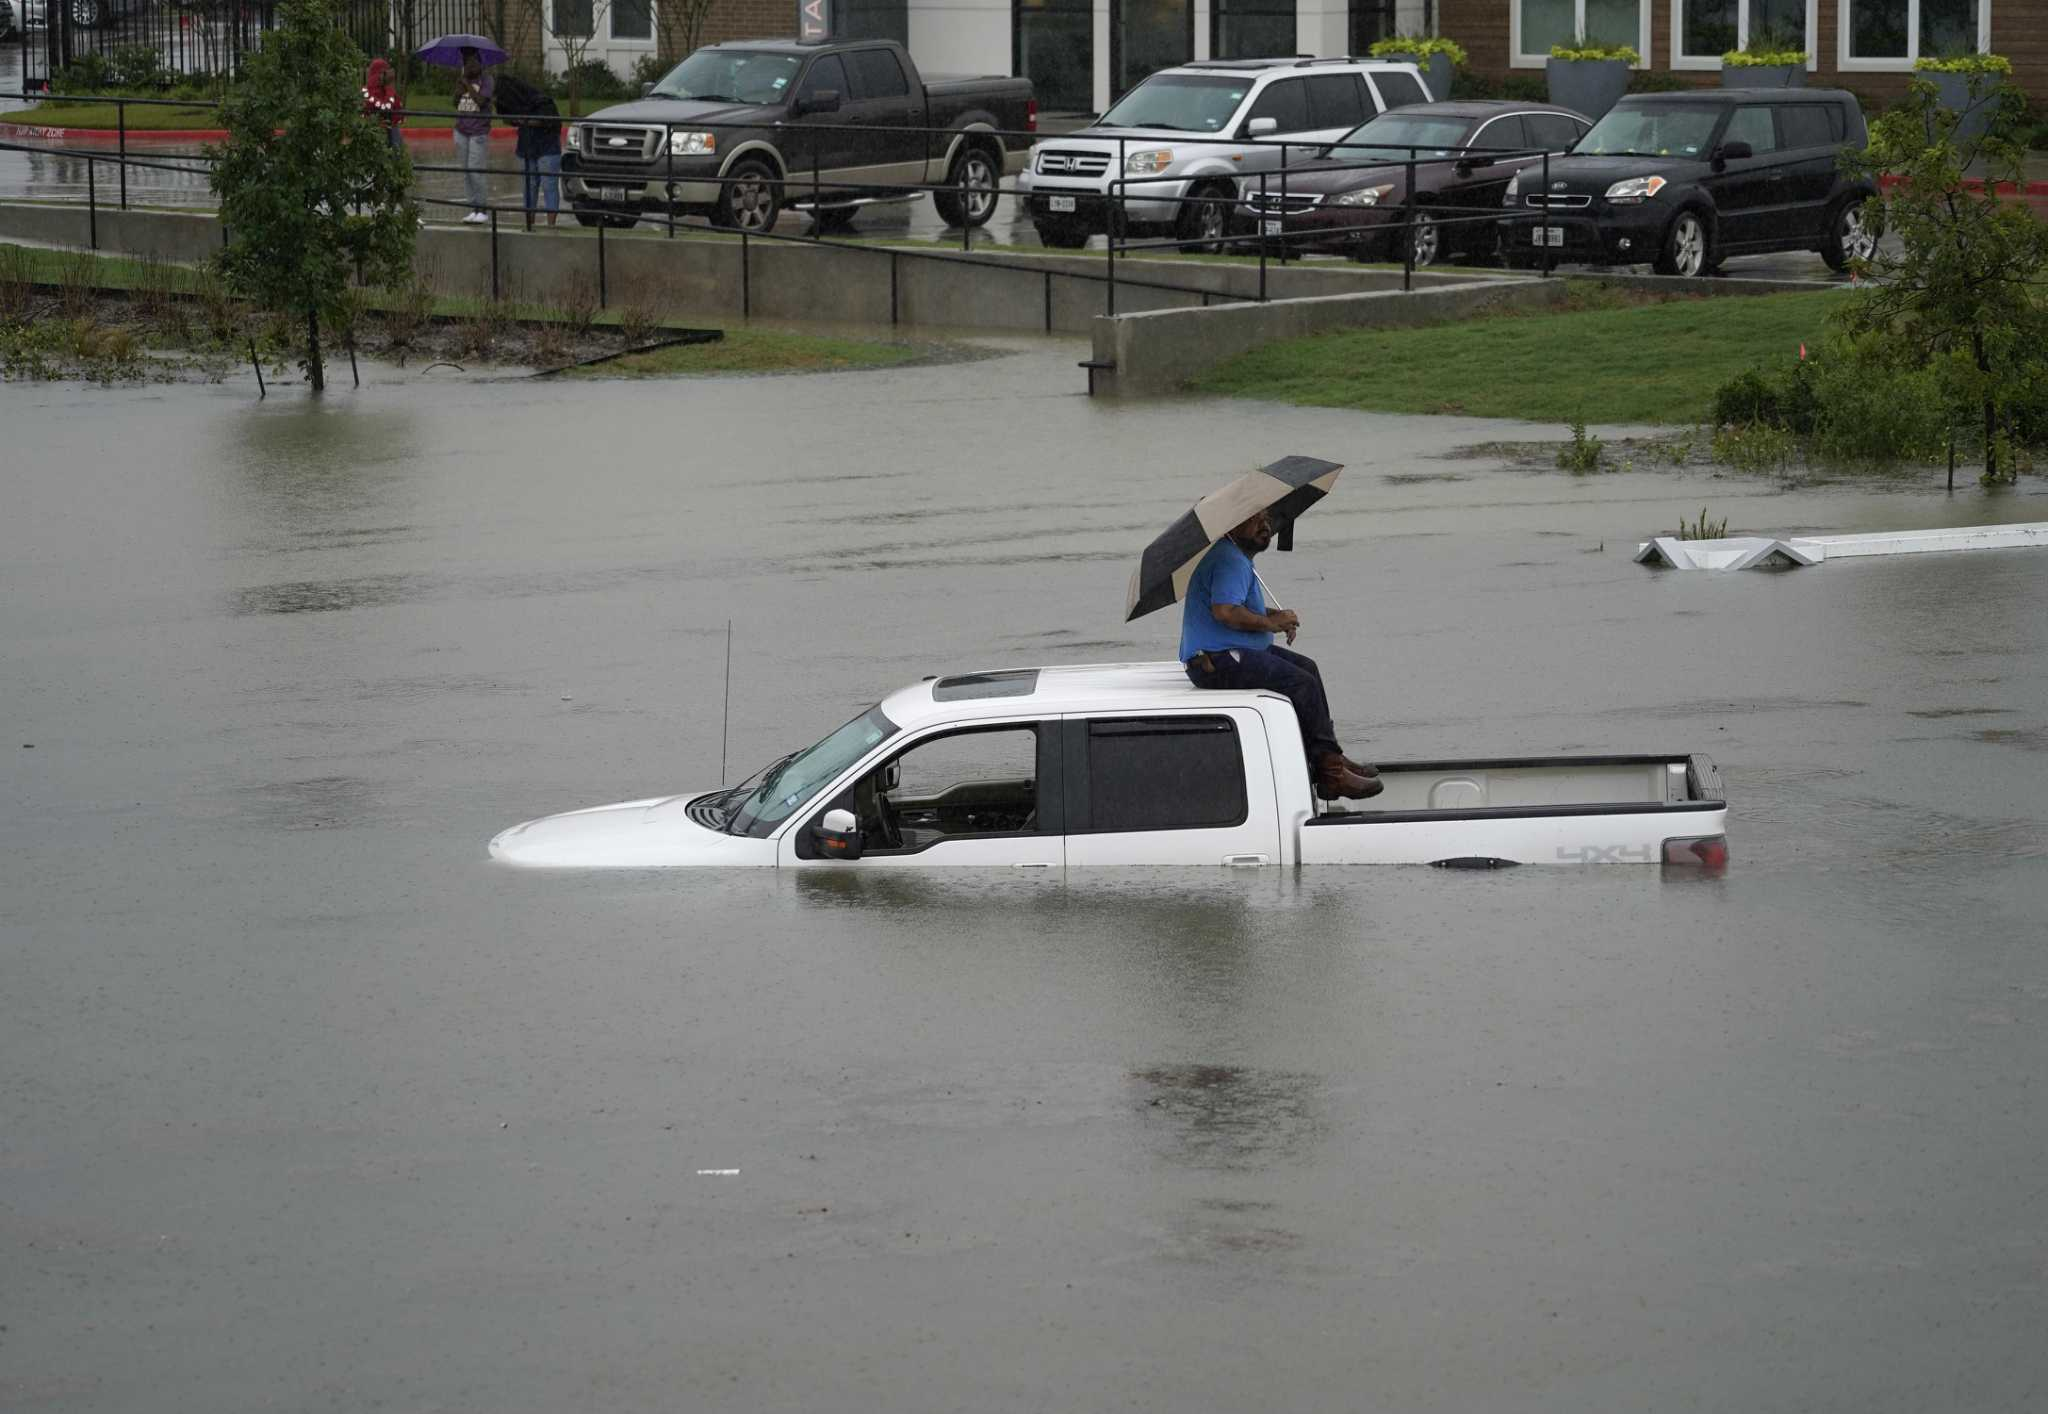 Houstonians 'heeded advice' on Imelda, mostly stayed off roads, officials say